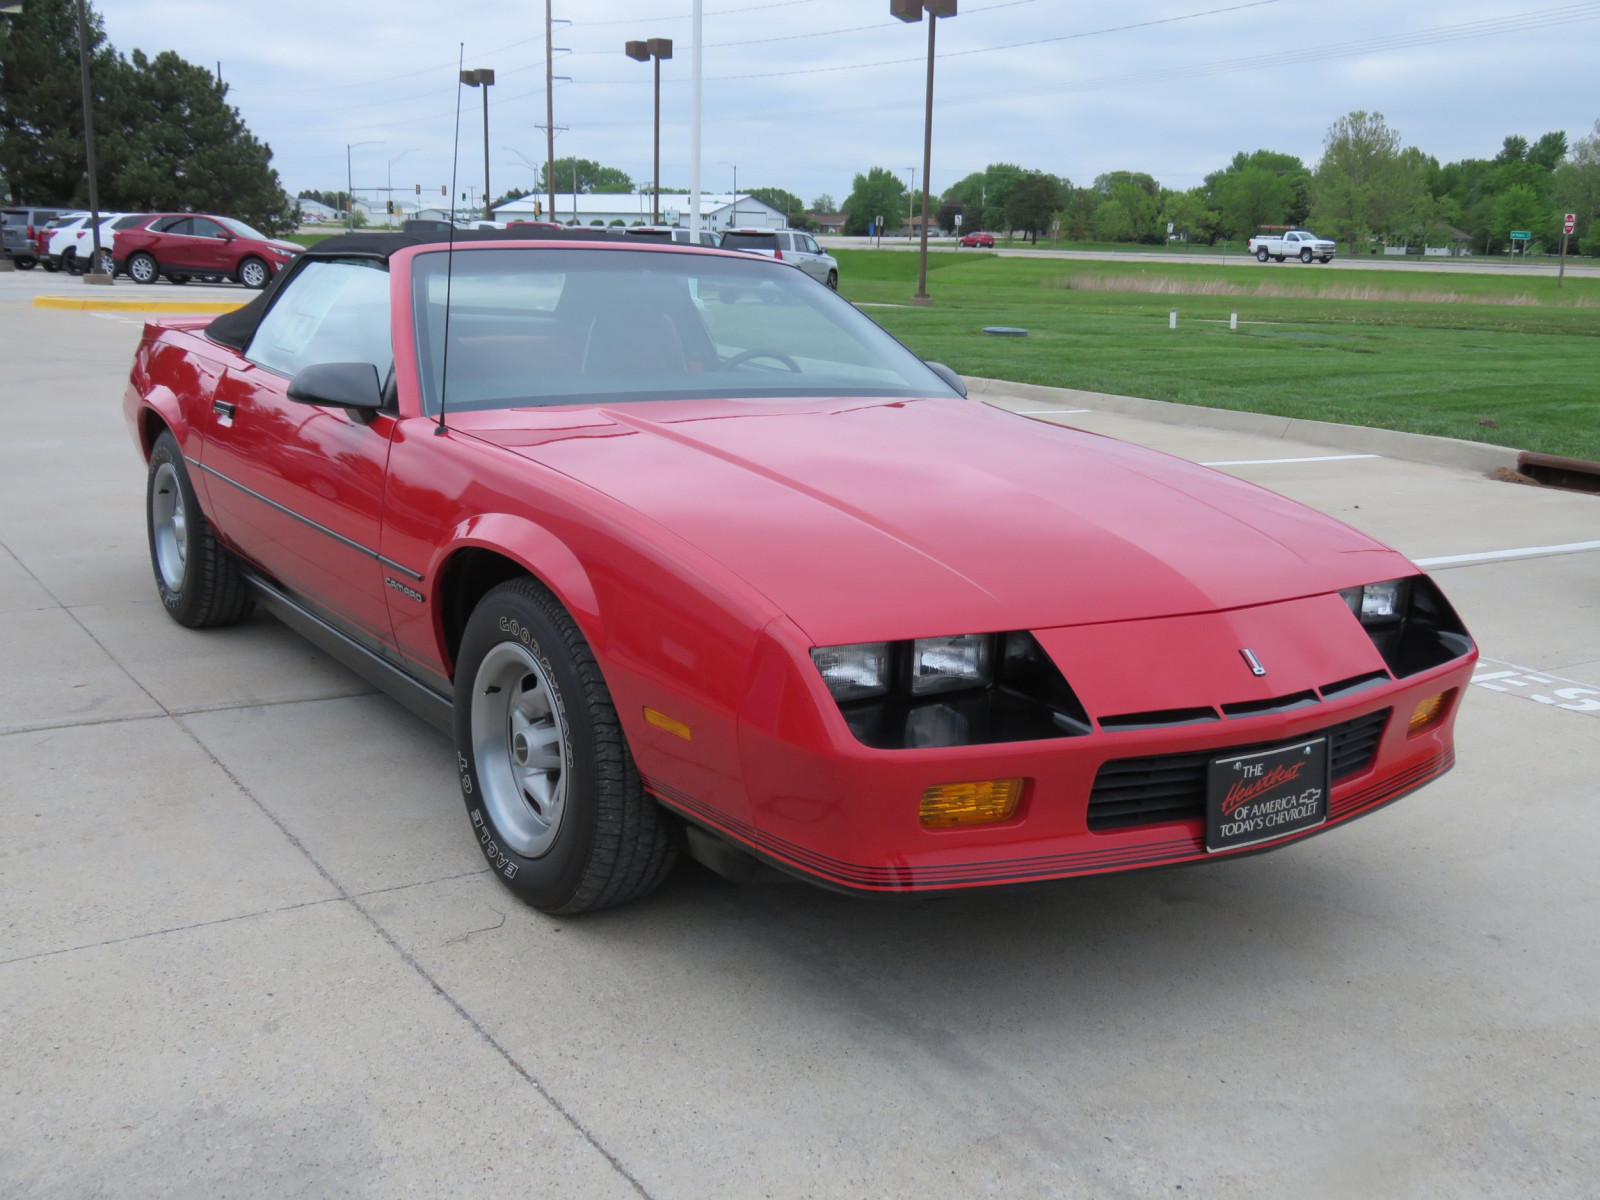 1987 Chevrolet Camaro RS Convertible - Image 4